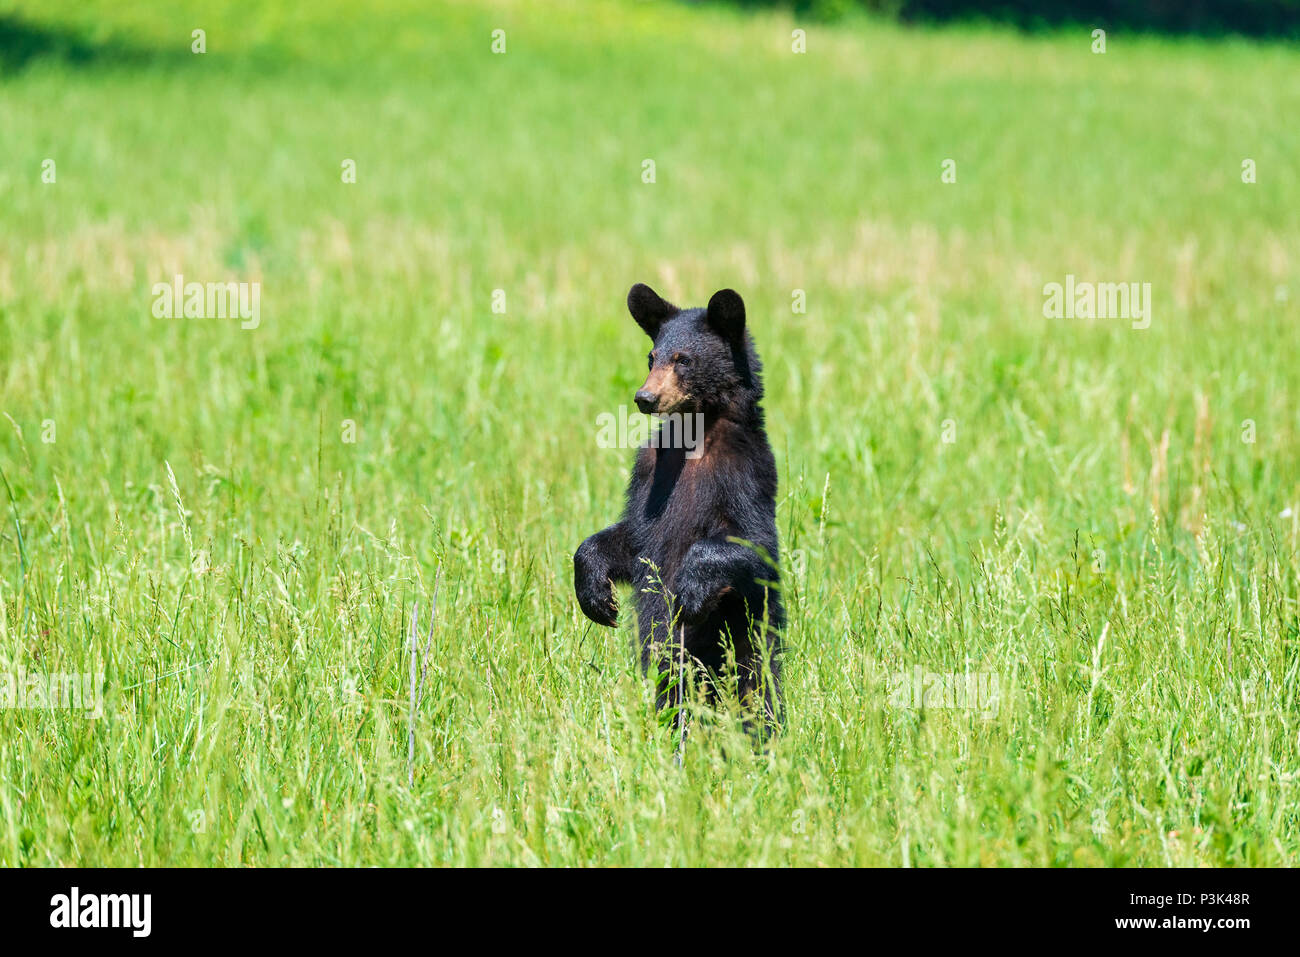 Horizontal shot of a standing Black Bear in a green field looking camera left with copy space Stock Photo